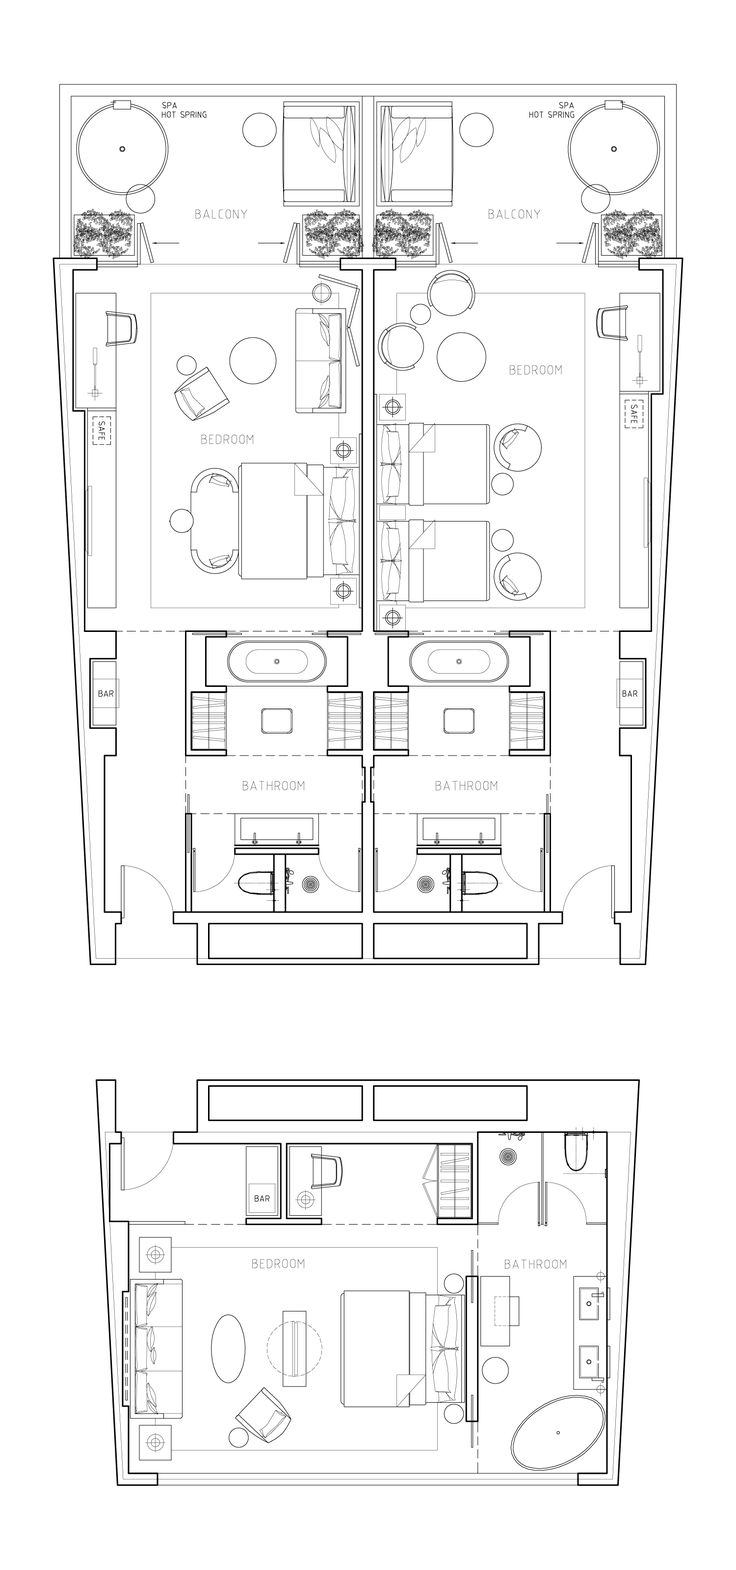 best 10 hotel floor plan ideas on pinterest master bedroom the plan high standardf hotel room inspiration for villas in the middle east by si architects